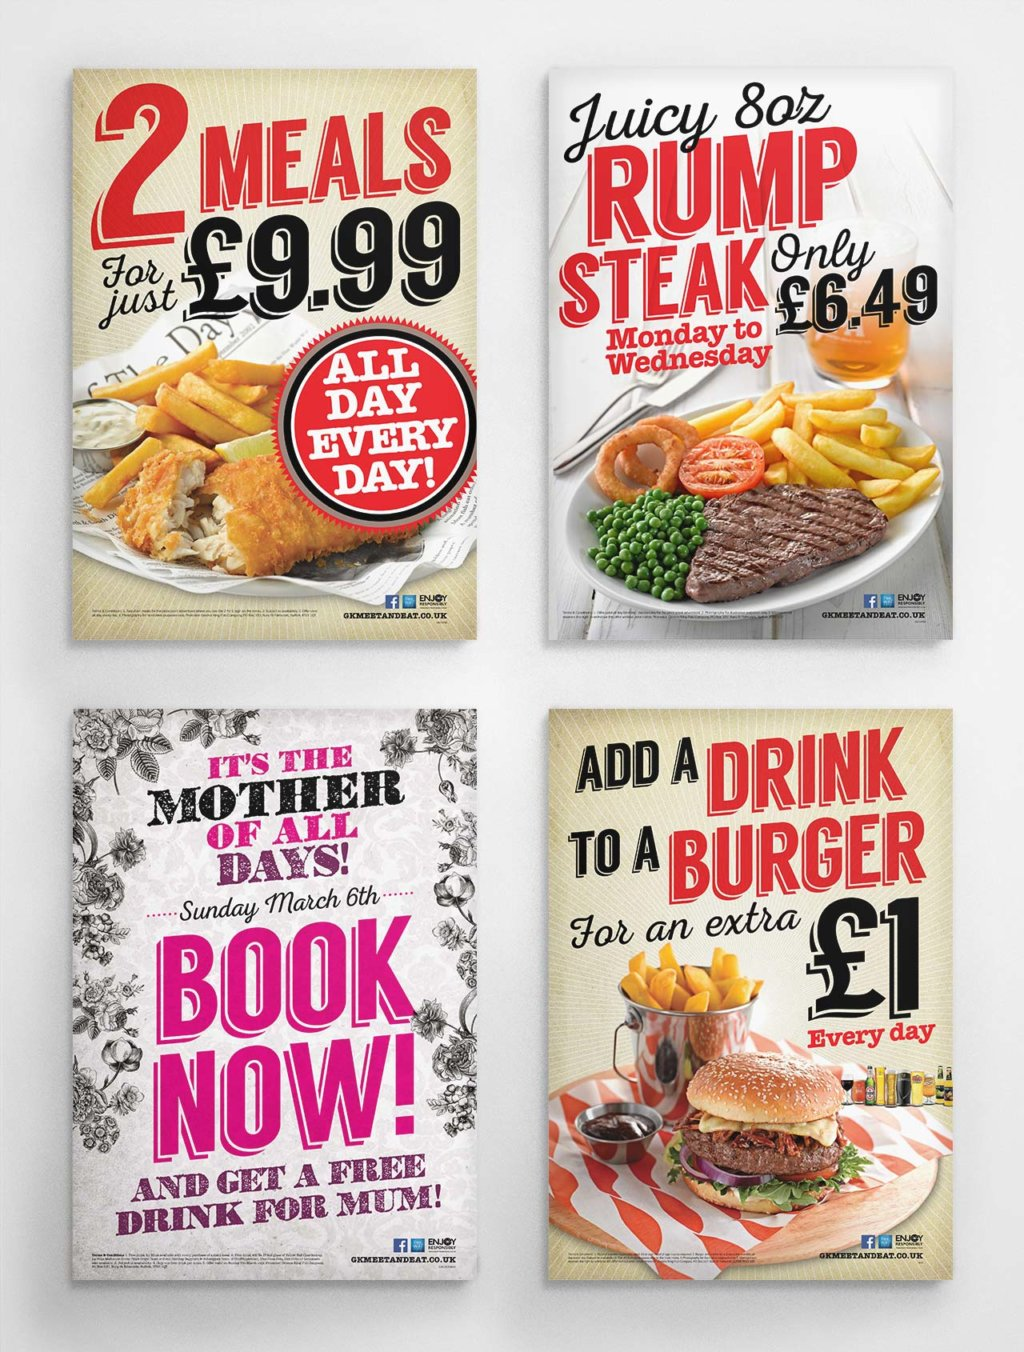 Greene King offer posters